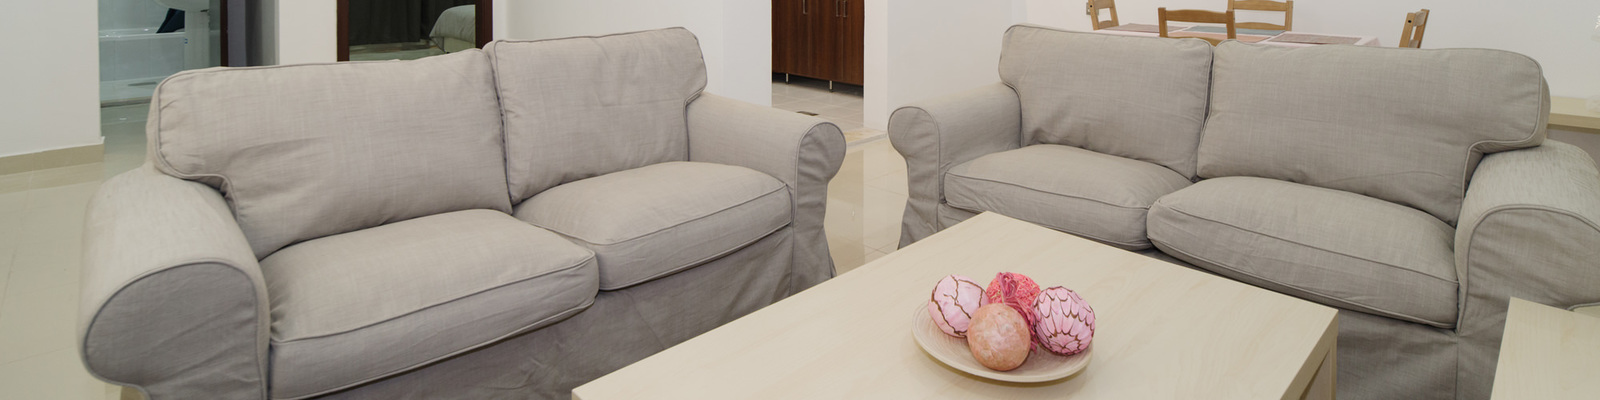 Salwa – great, furnished, one bedroom apartment –